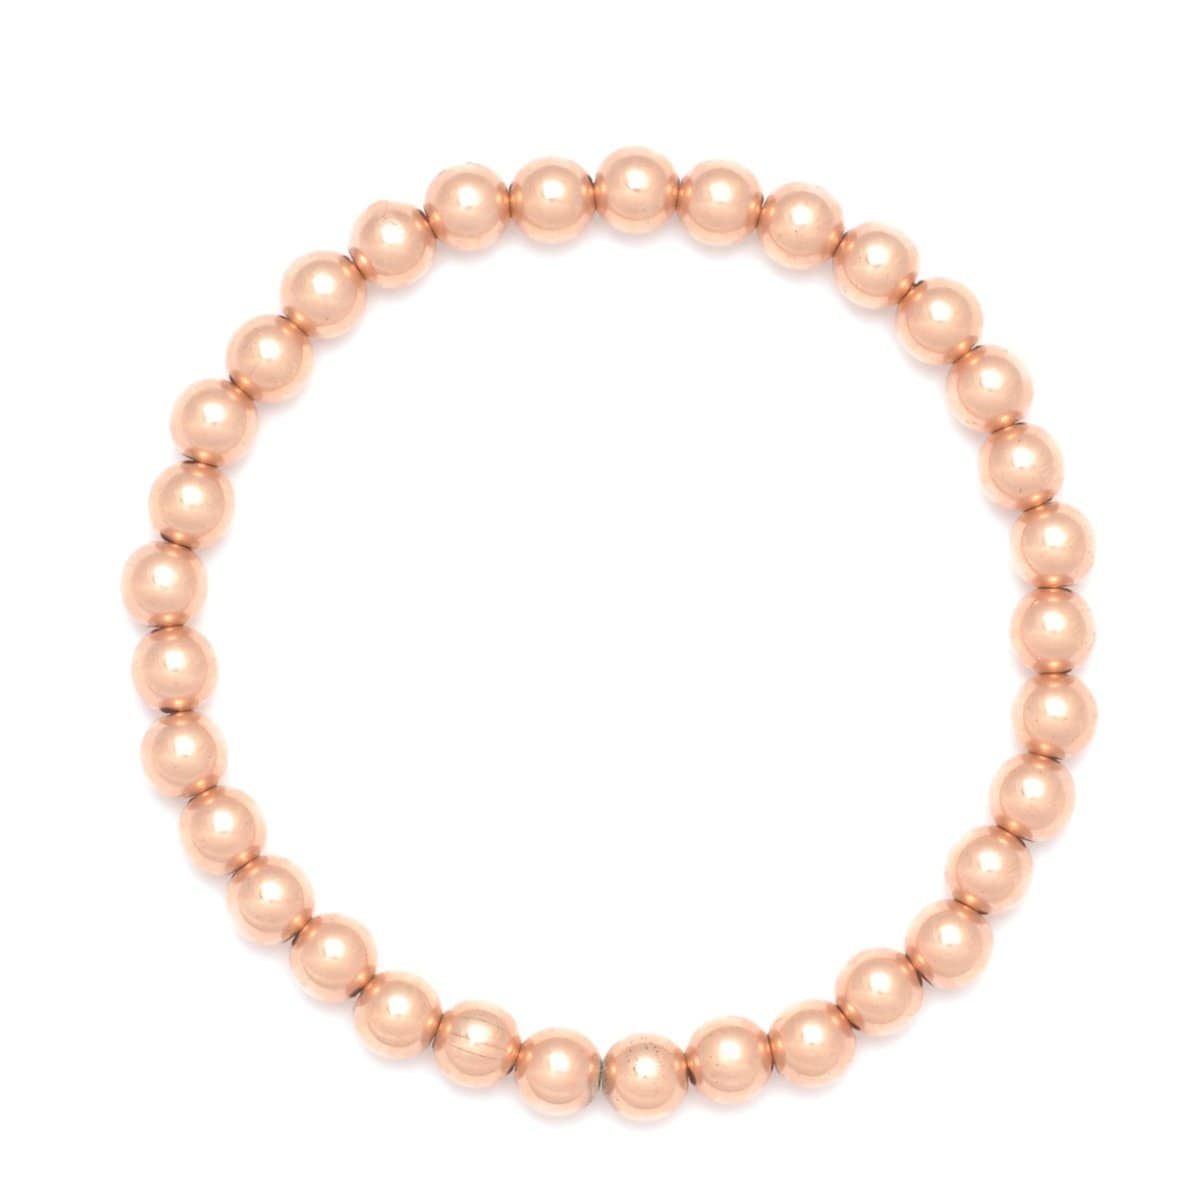 Karen Lazar Rose Gold Stretchy Beaded Bracelet (5mm)